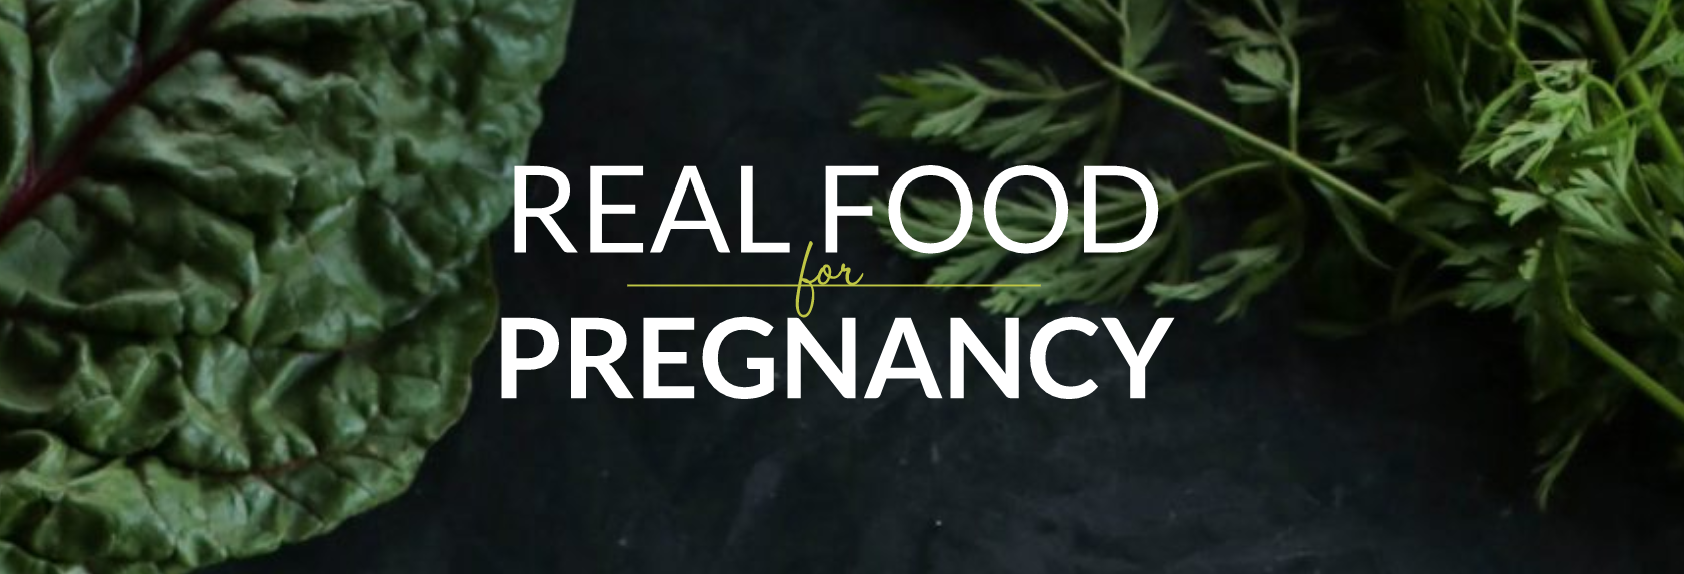 Real Food for Pregnancy.png